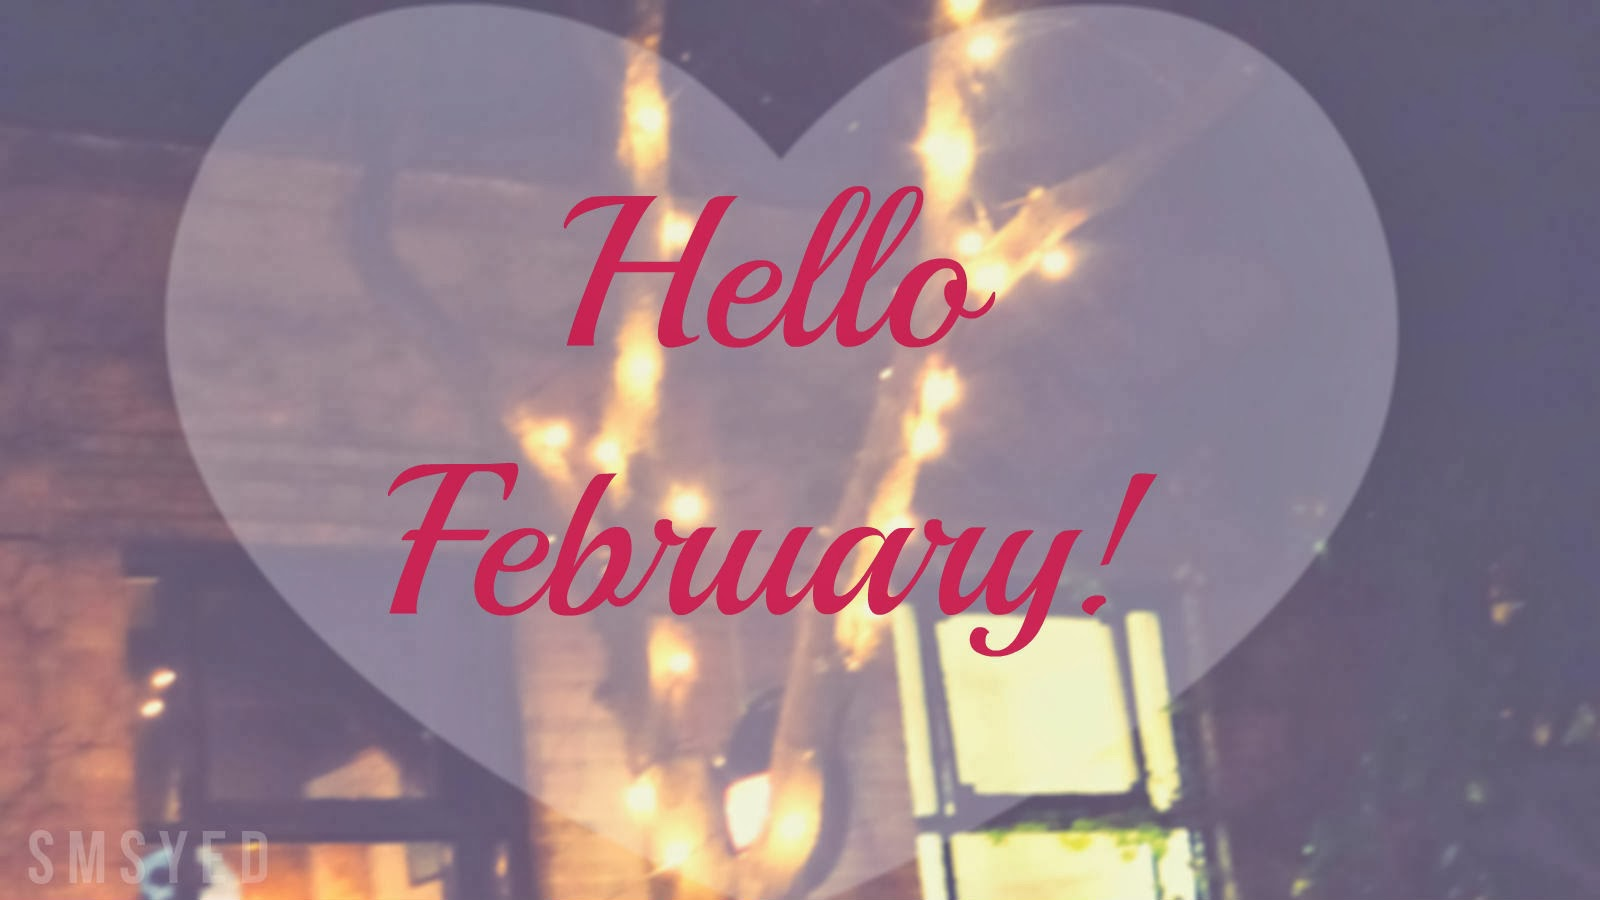 February Wallpaper Wallpapers High Quality